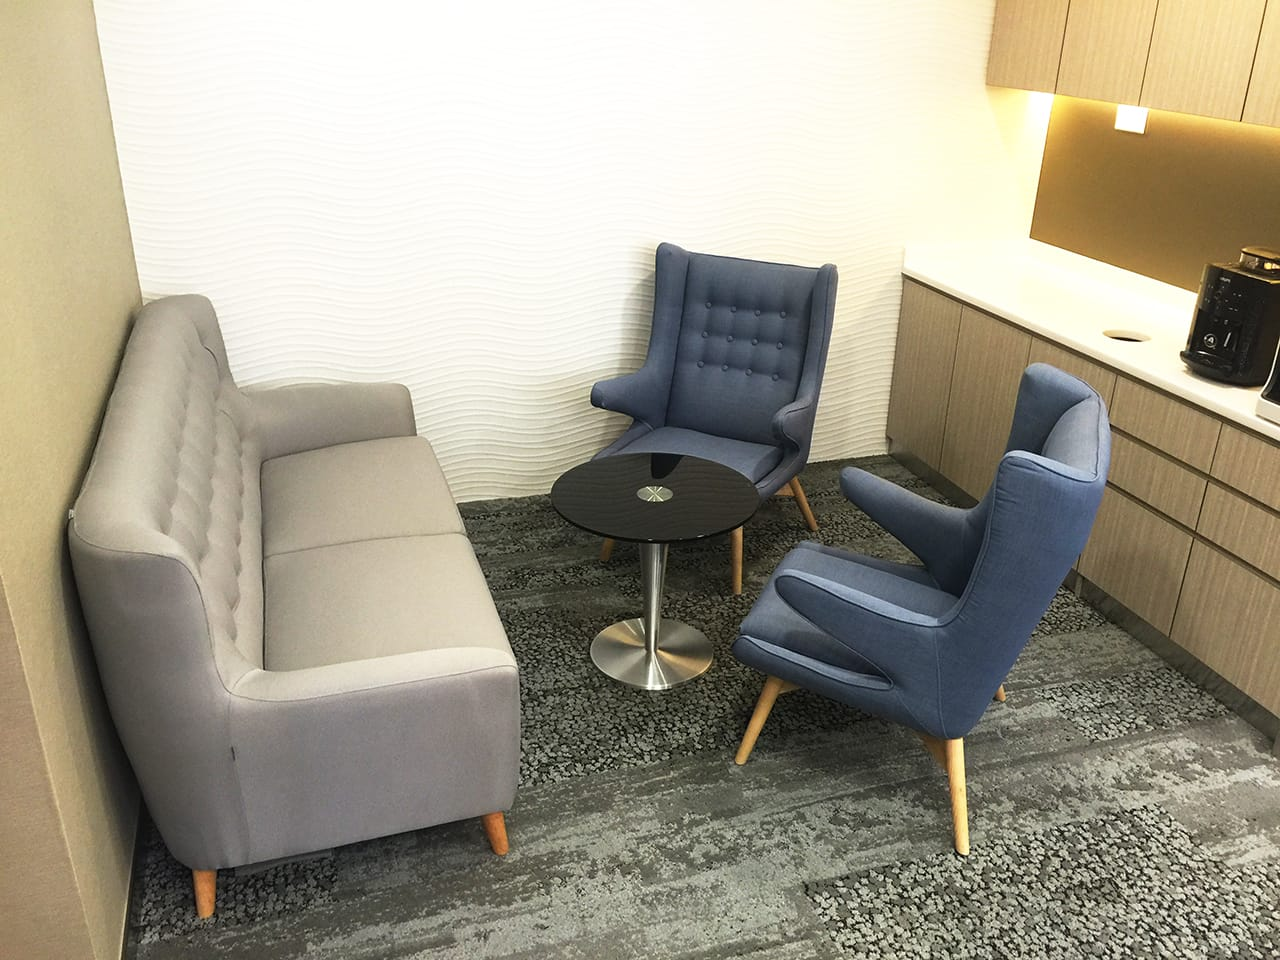 National Heart Centre - Hospital Drive | Product Seen: [Papa Lounge (replica), Kayama 3 Seater Sofa &amp; Arnott Coffee Table]<br />